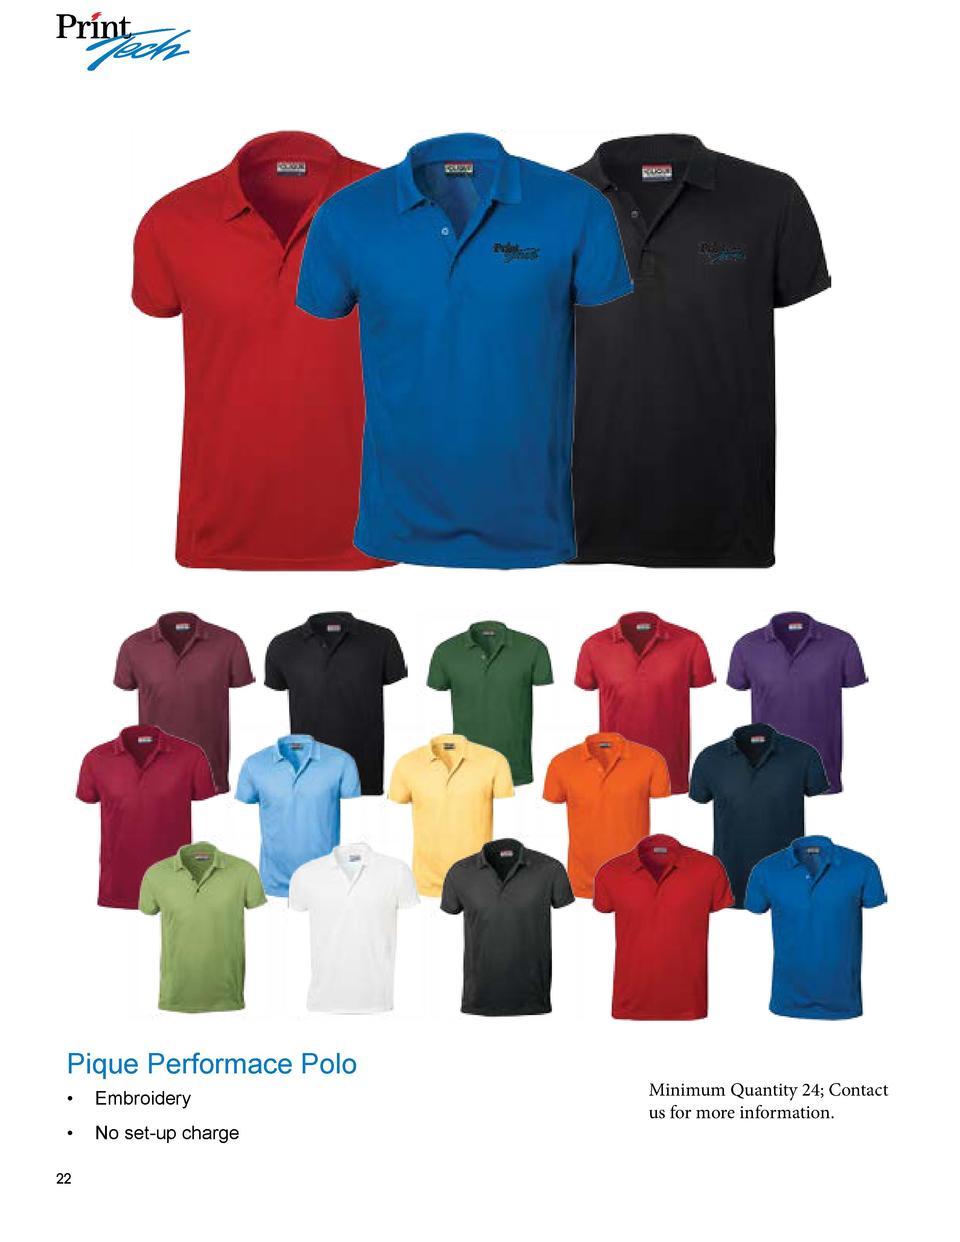 Pique Performace Polo      Embroidery      No set-up charge  22  Minimum Quantity 24  Contact us for more information.